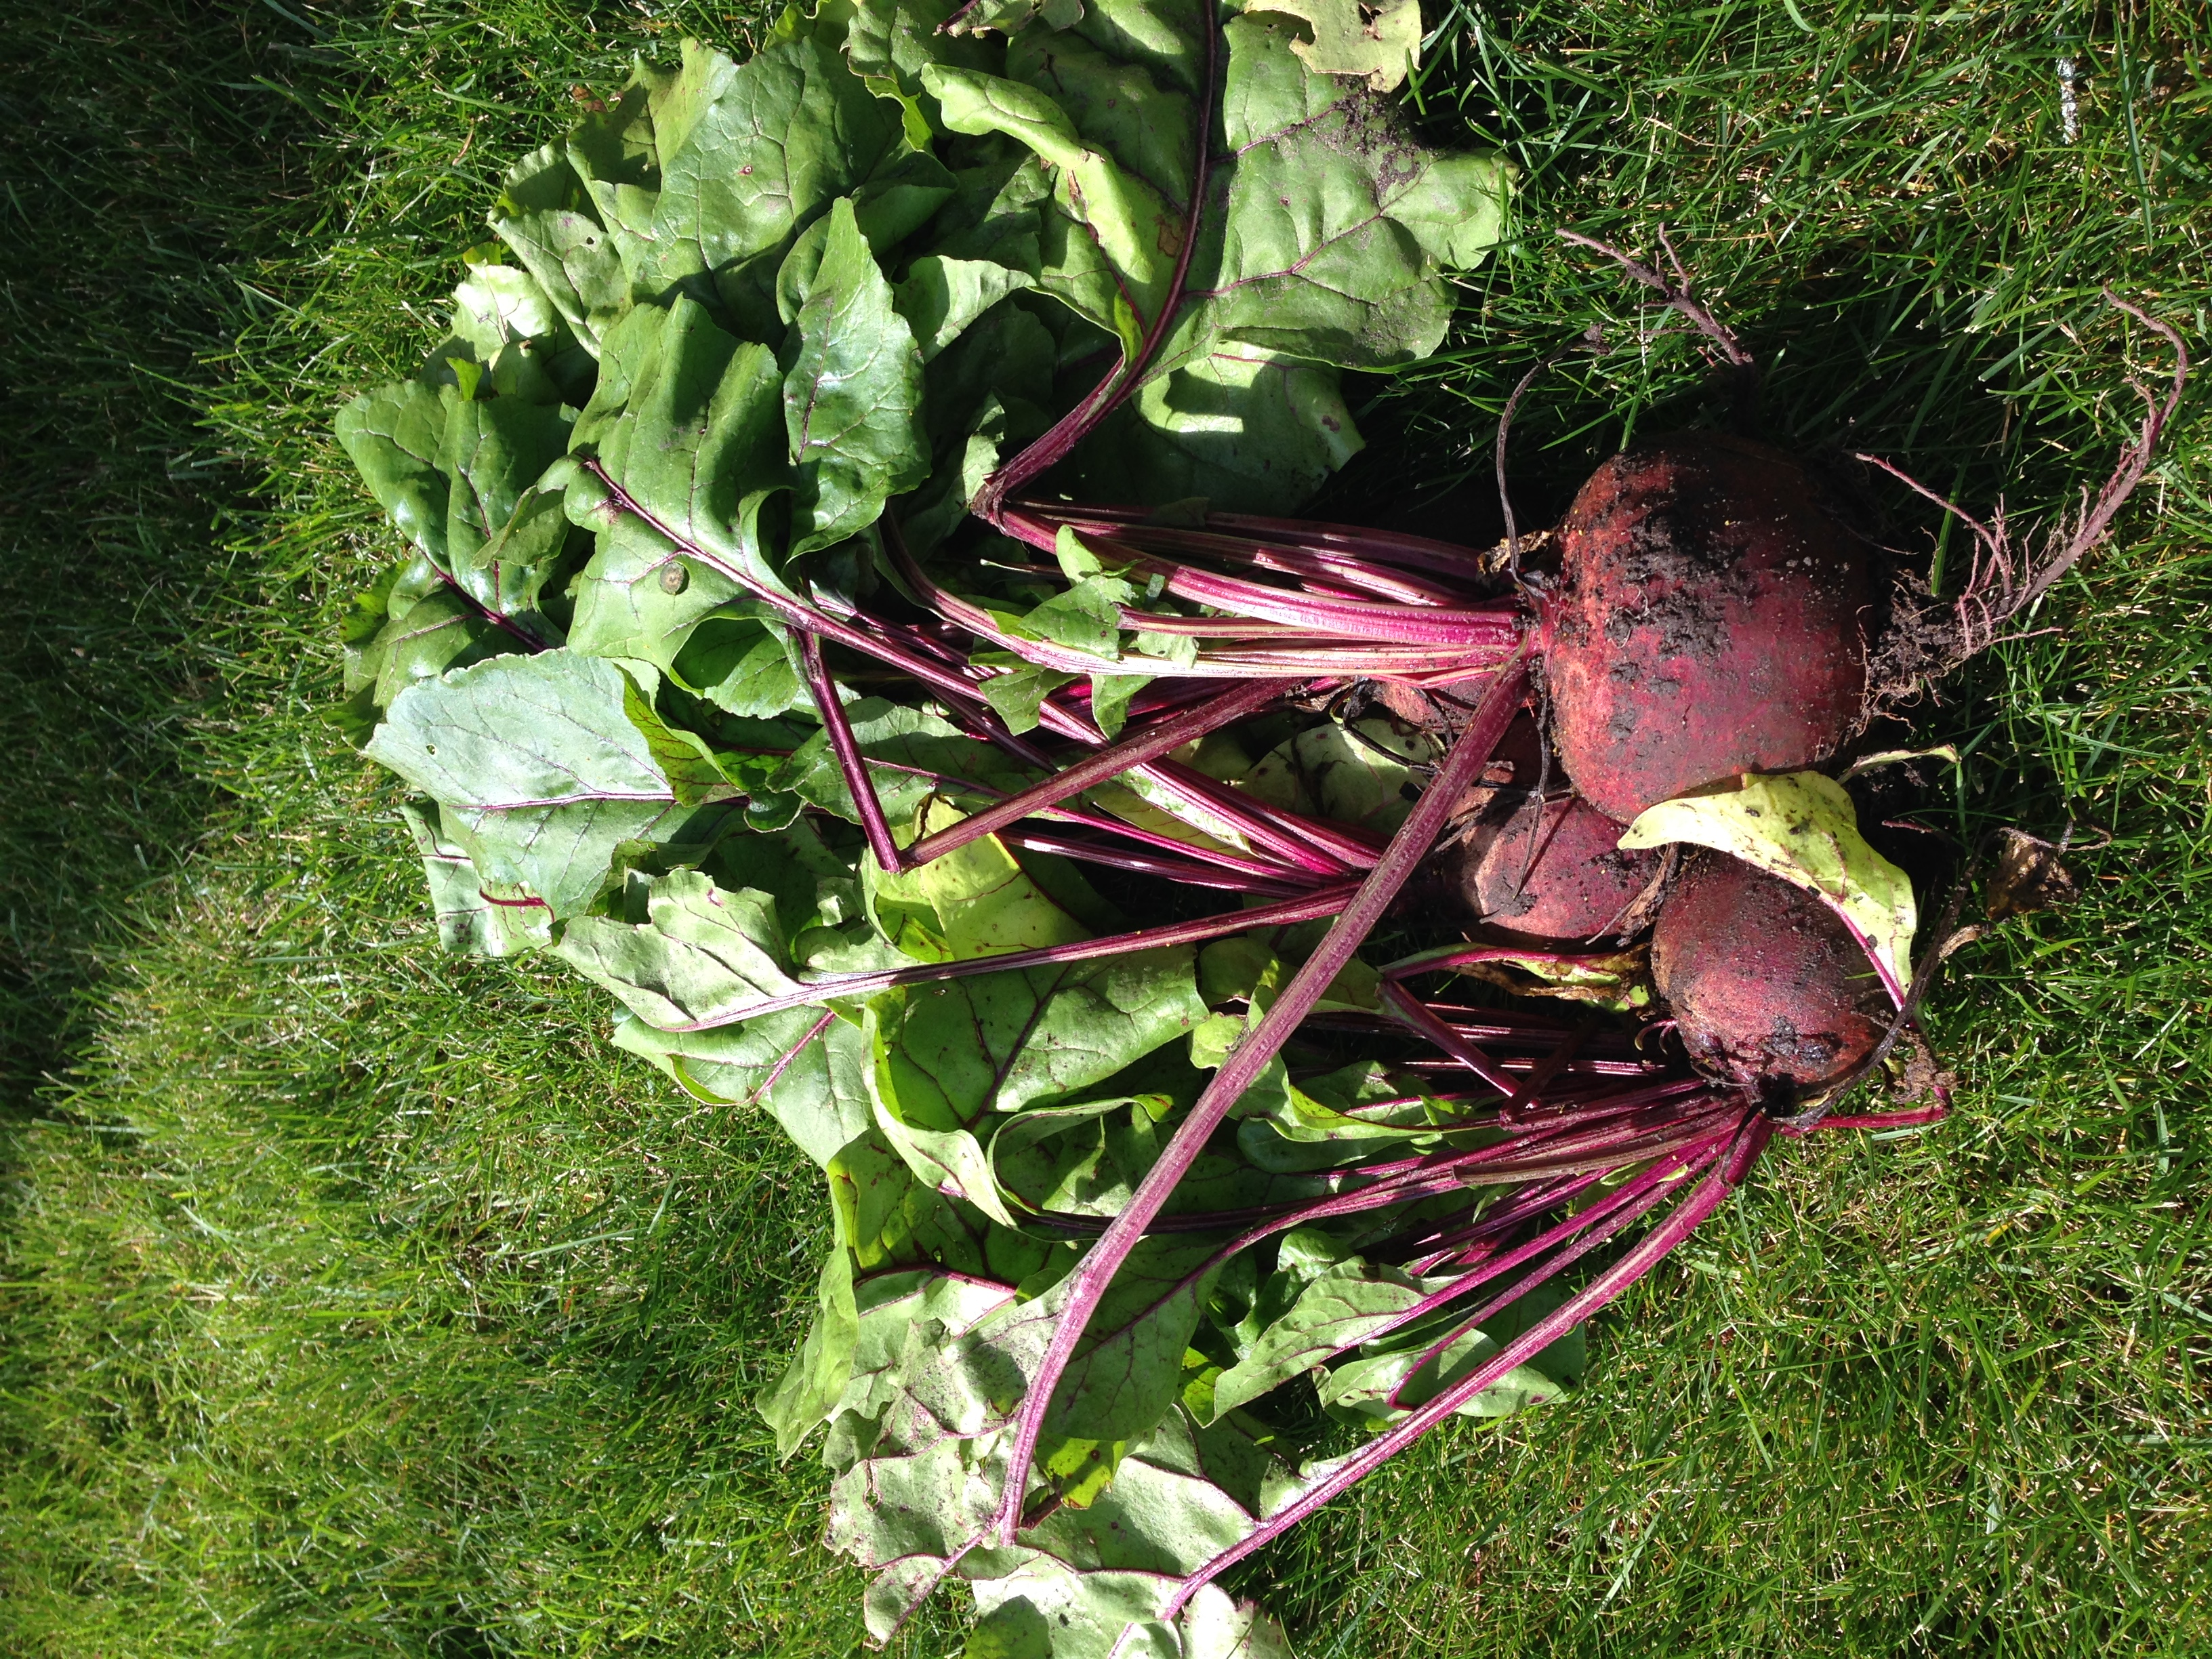 Beets: both the root vegetable and the greens are delicious and nutritious.